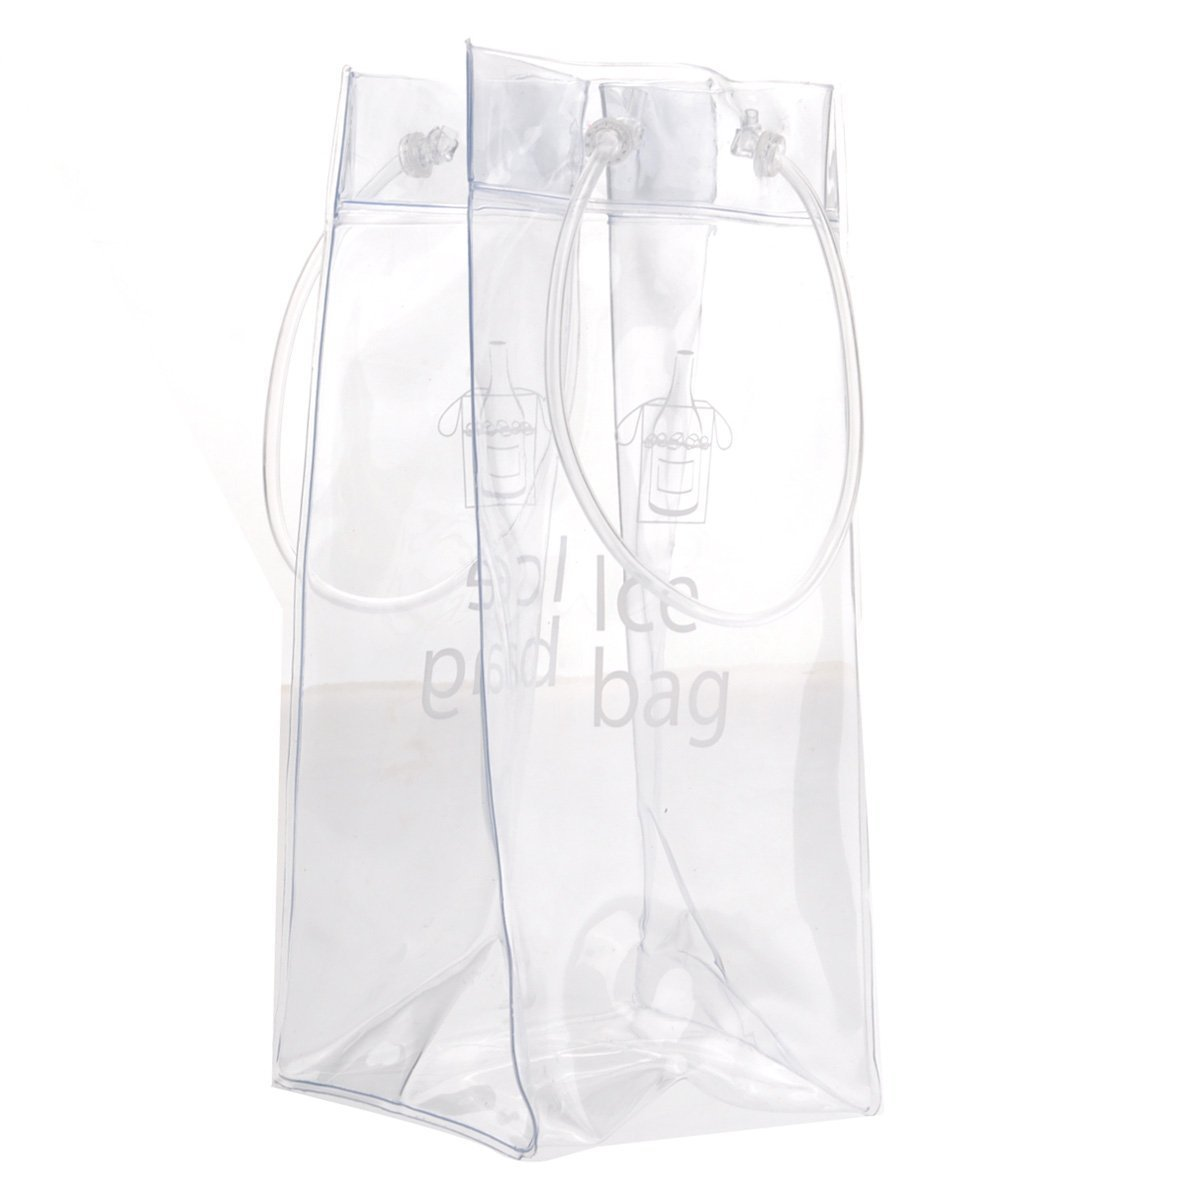 Akak Store 1 Pcs Portable Collapsible Clear Transparent PVC Ice Bag Champagne Wine Pouch Cooler Bag with Handle by AKOAK (Image #1)